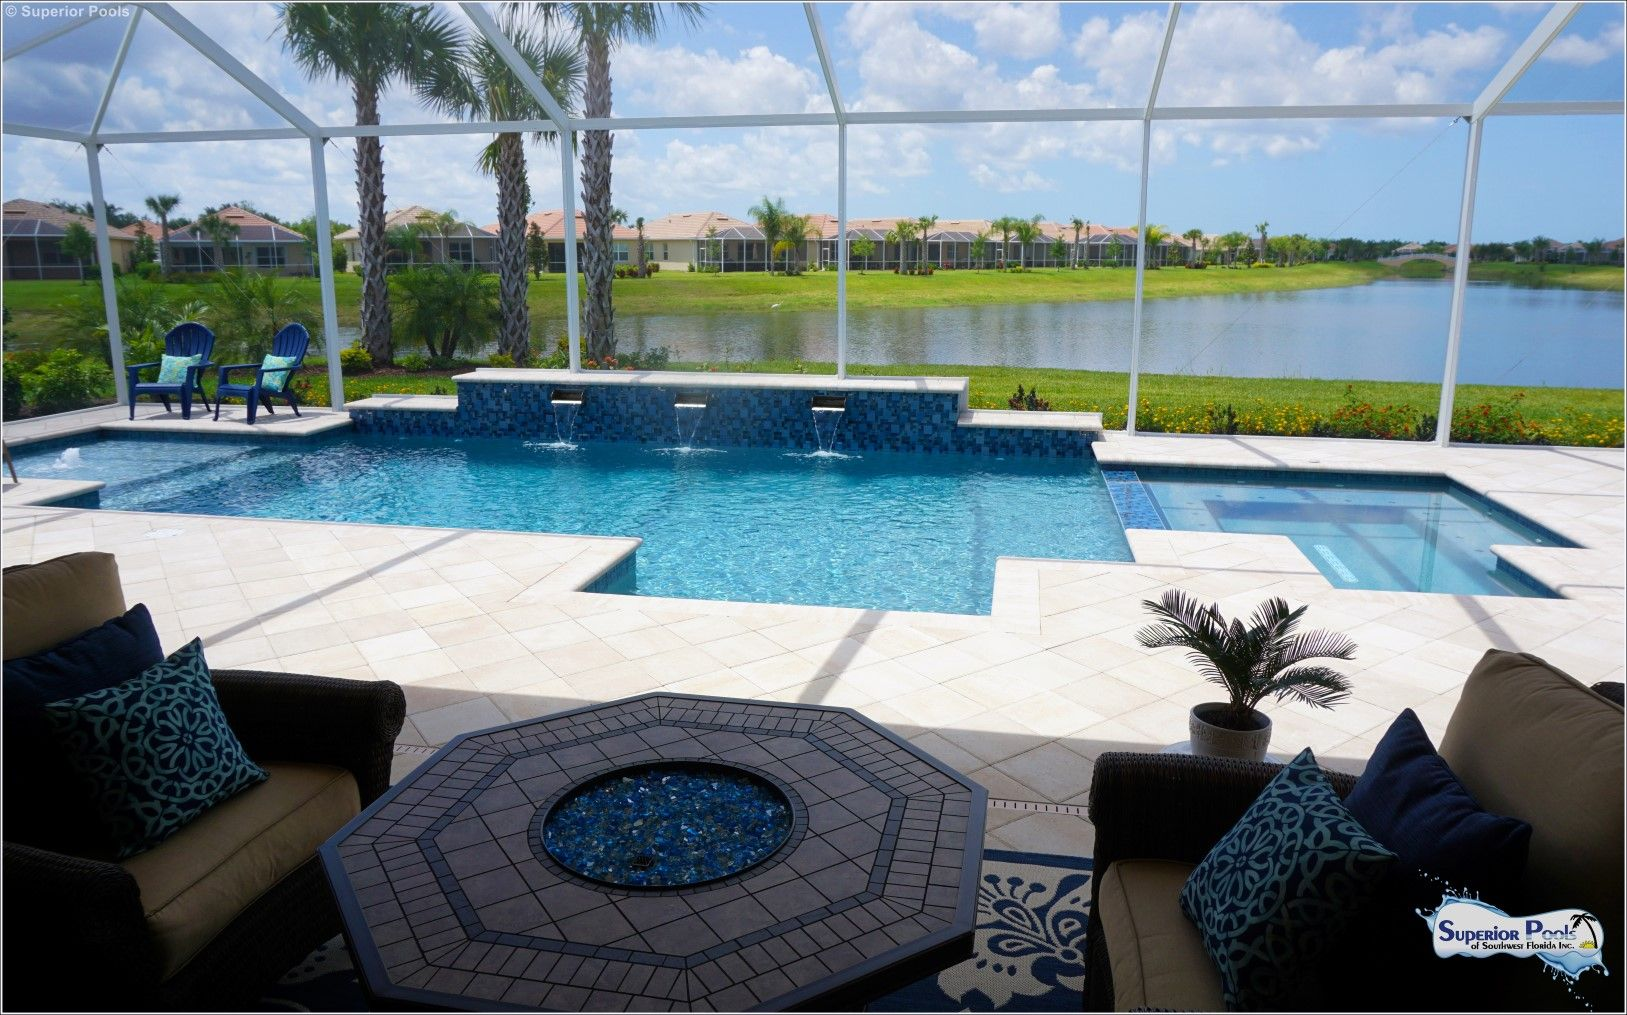 Unraised Spa I Like This Idea That Table Too Superior Pools Of Southwest Florida New Construction Swimming Pool House Florida Pool Swimming Pool Designs